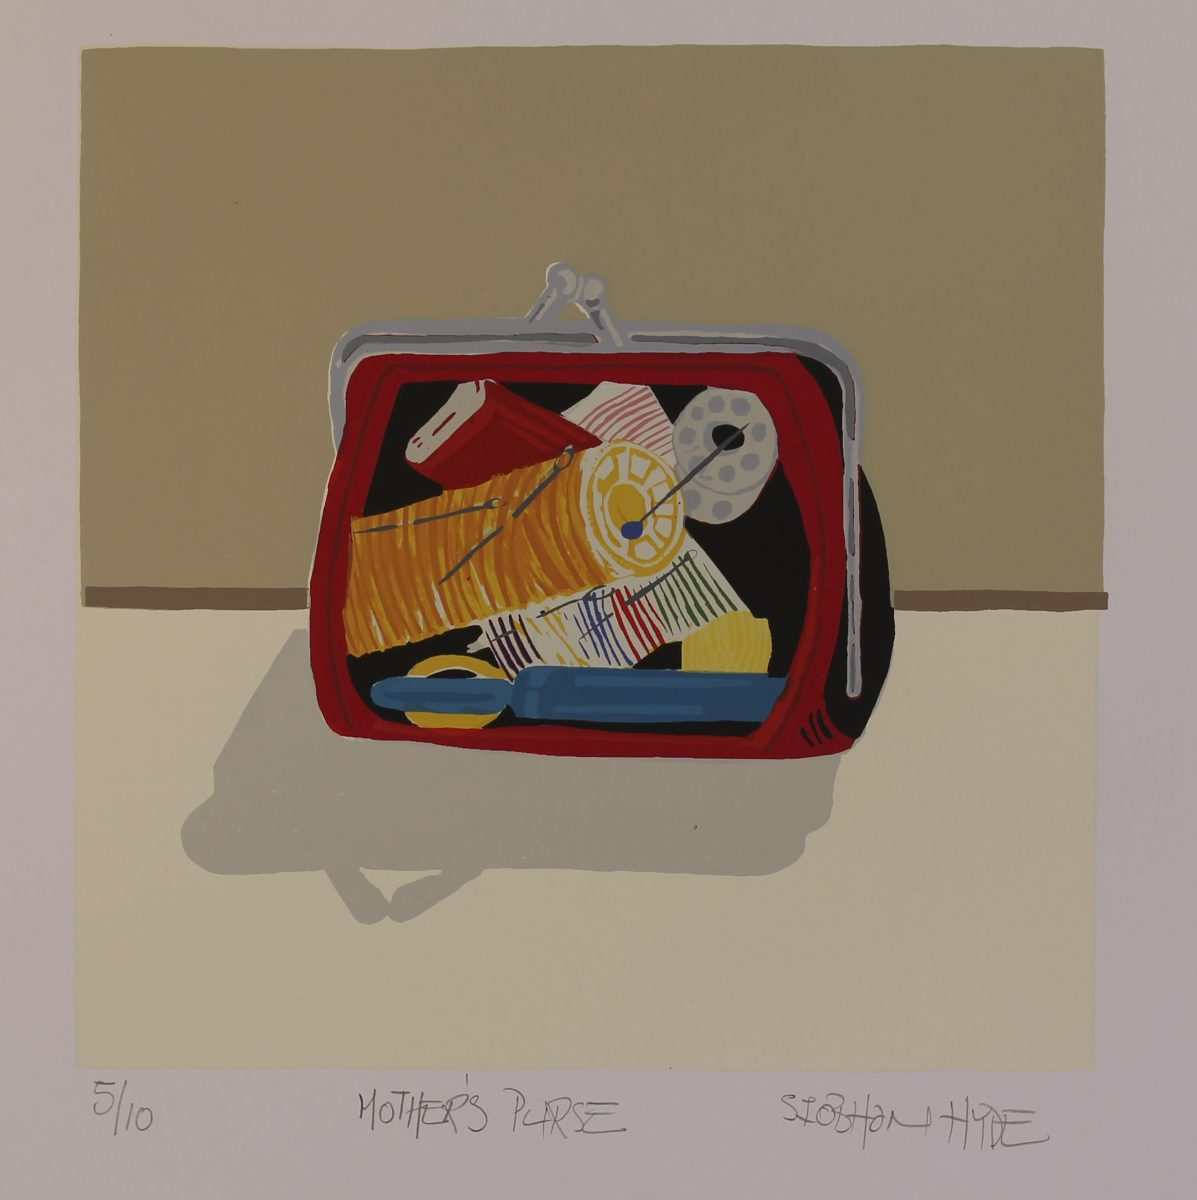 Siobhan Hyde, Mother's purse